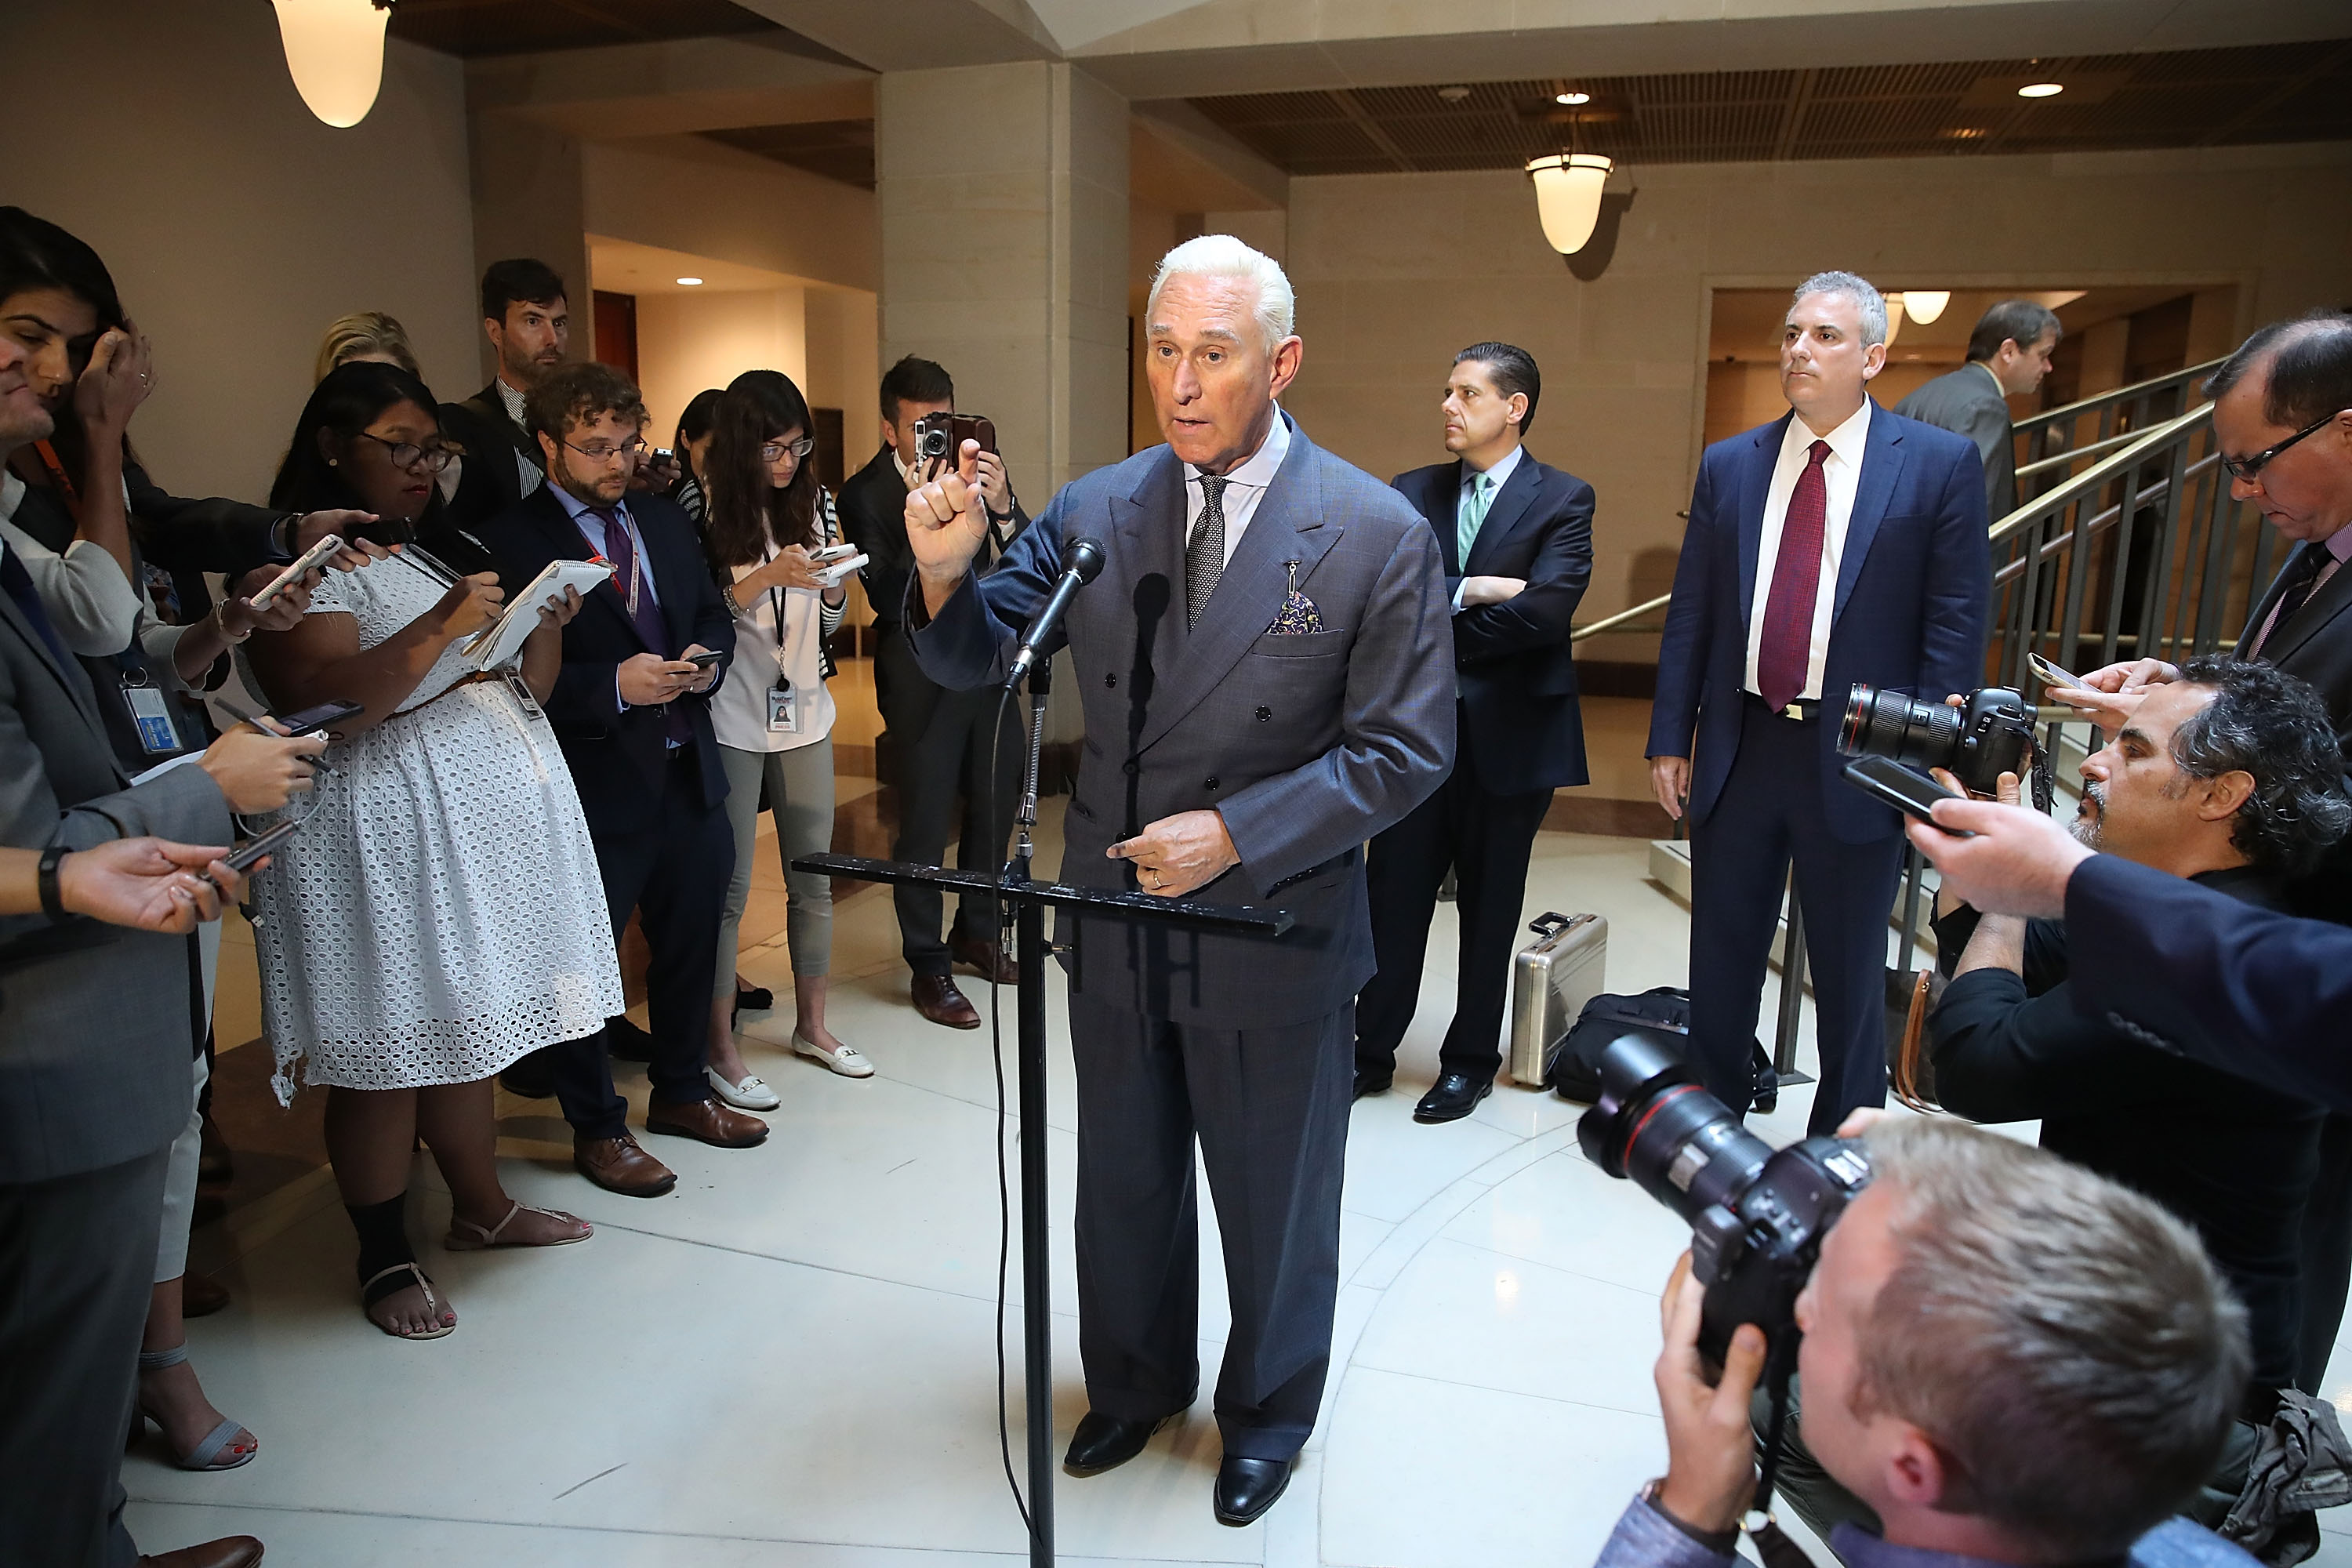 Roger Stone, former confidant to President Trump, speaks to the media after appearing before the House Intelligence Committee during a closed door hearing on September 26, 2017.